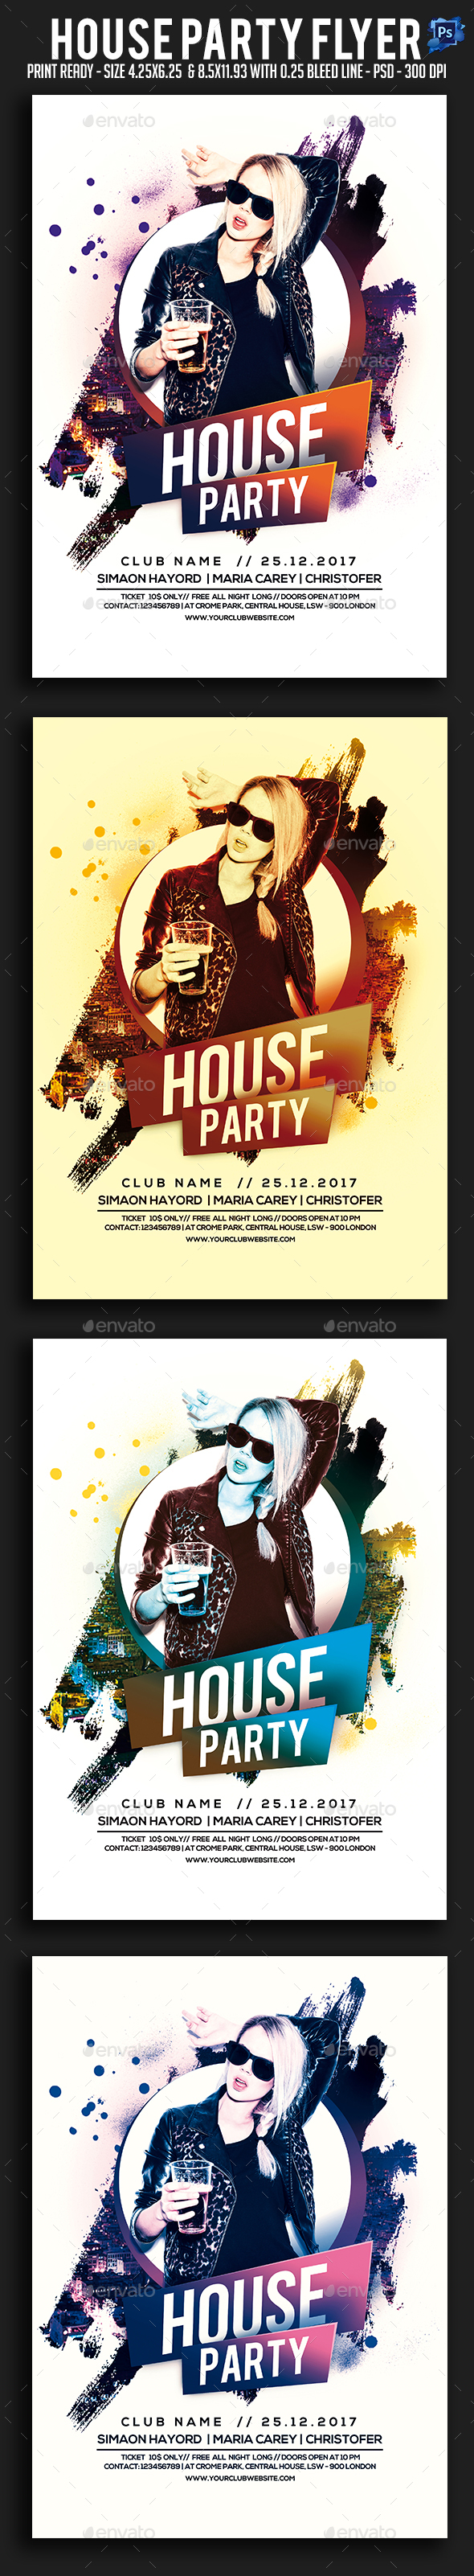 GraphicRiver House Party Flyer 21006352